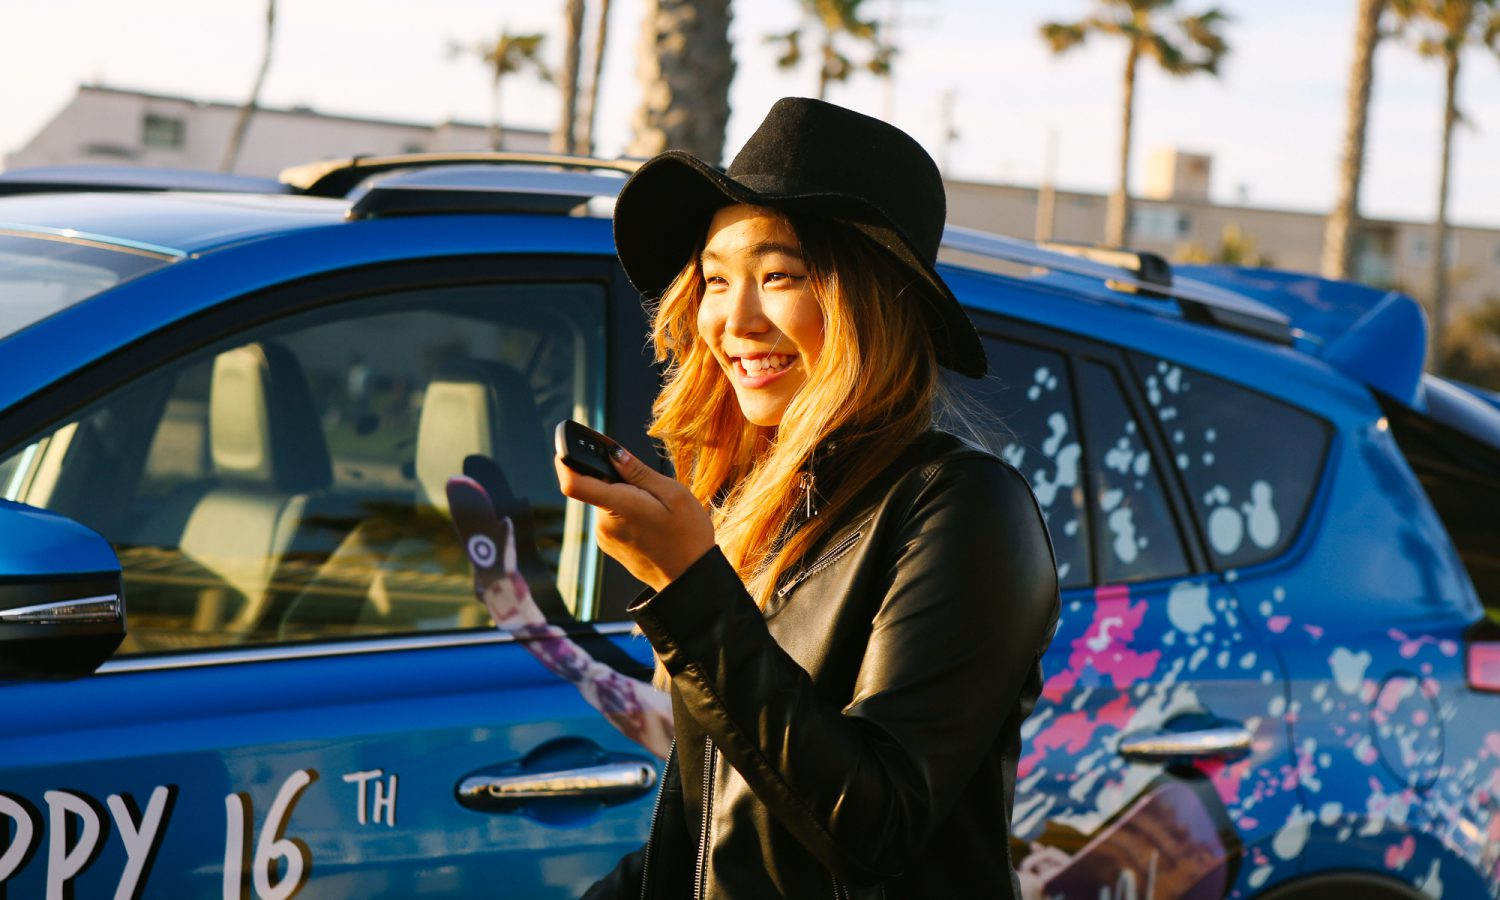 Toyota Adds Professional Snowboarder Chloe Kim to Team Toyota Roster